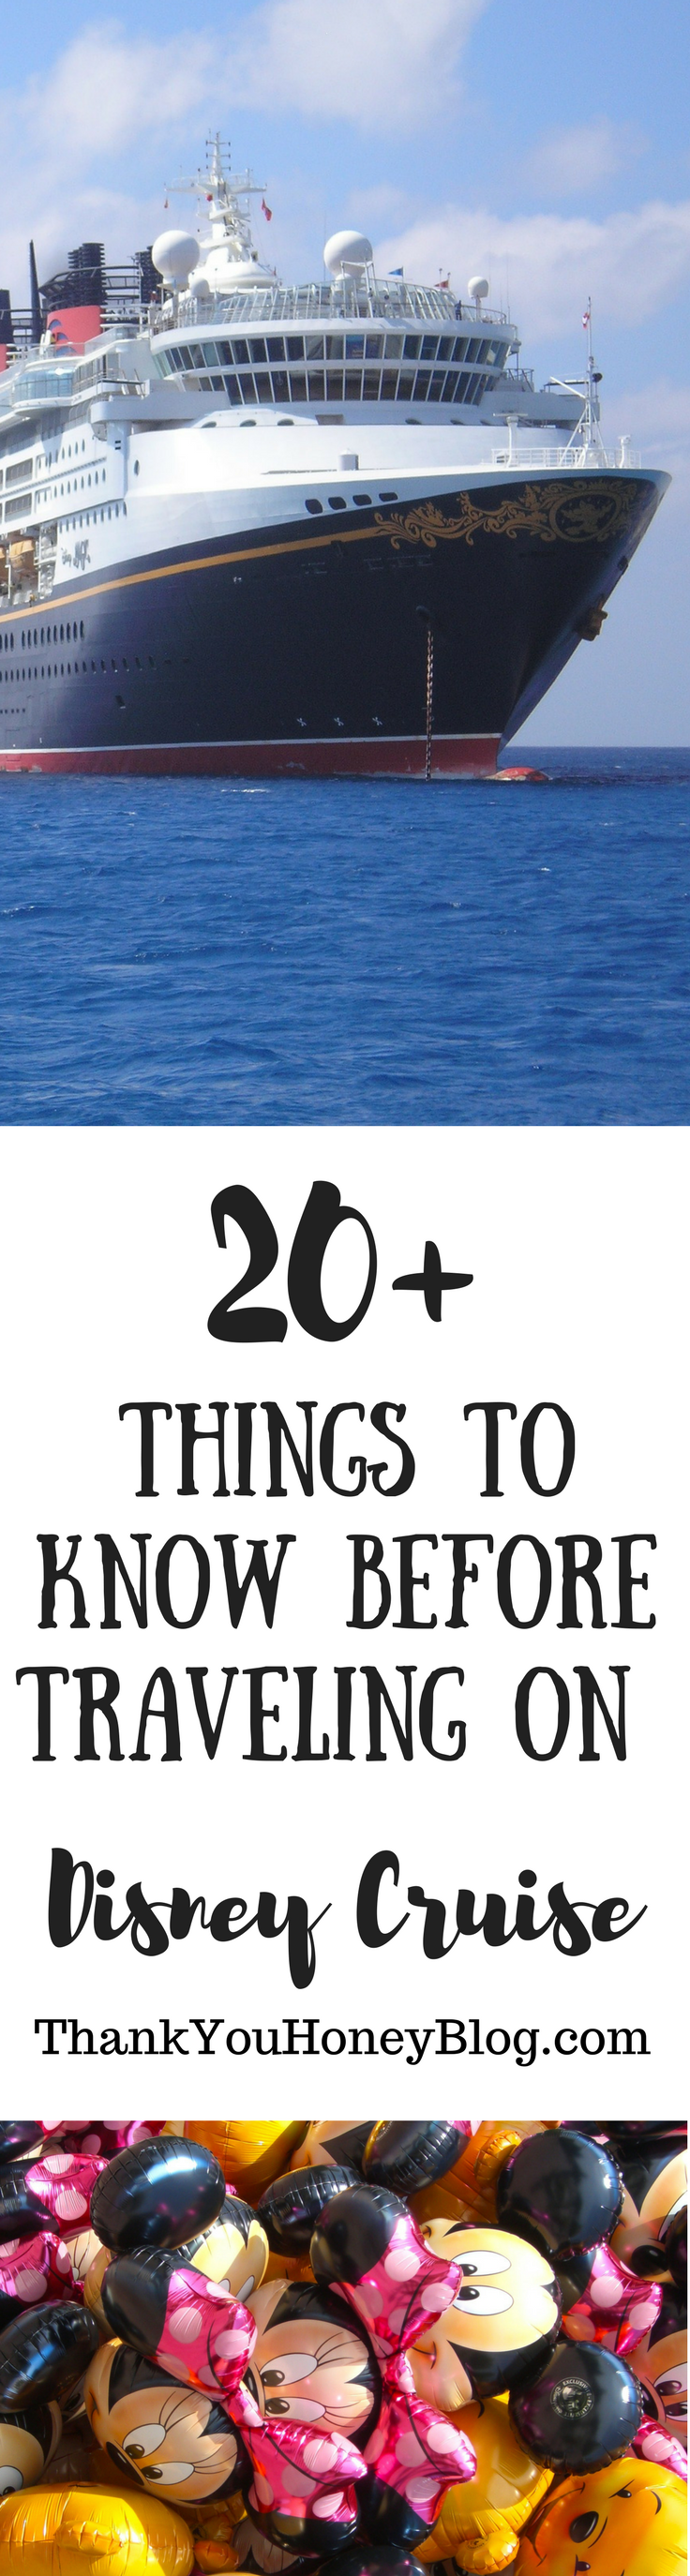 20+ Things to Know Before Traveling on Disney Cruise, The Ultimate Disney Cruise Must Knows, Packing List, Must Knows, The Ultimate Disney Cruise Must Knows, What to Pack on a Disney Cruise, Disney Cruise, Disney, Cruise, Travel, Family Travel, ThankYouHoneyBlog.com